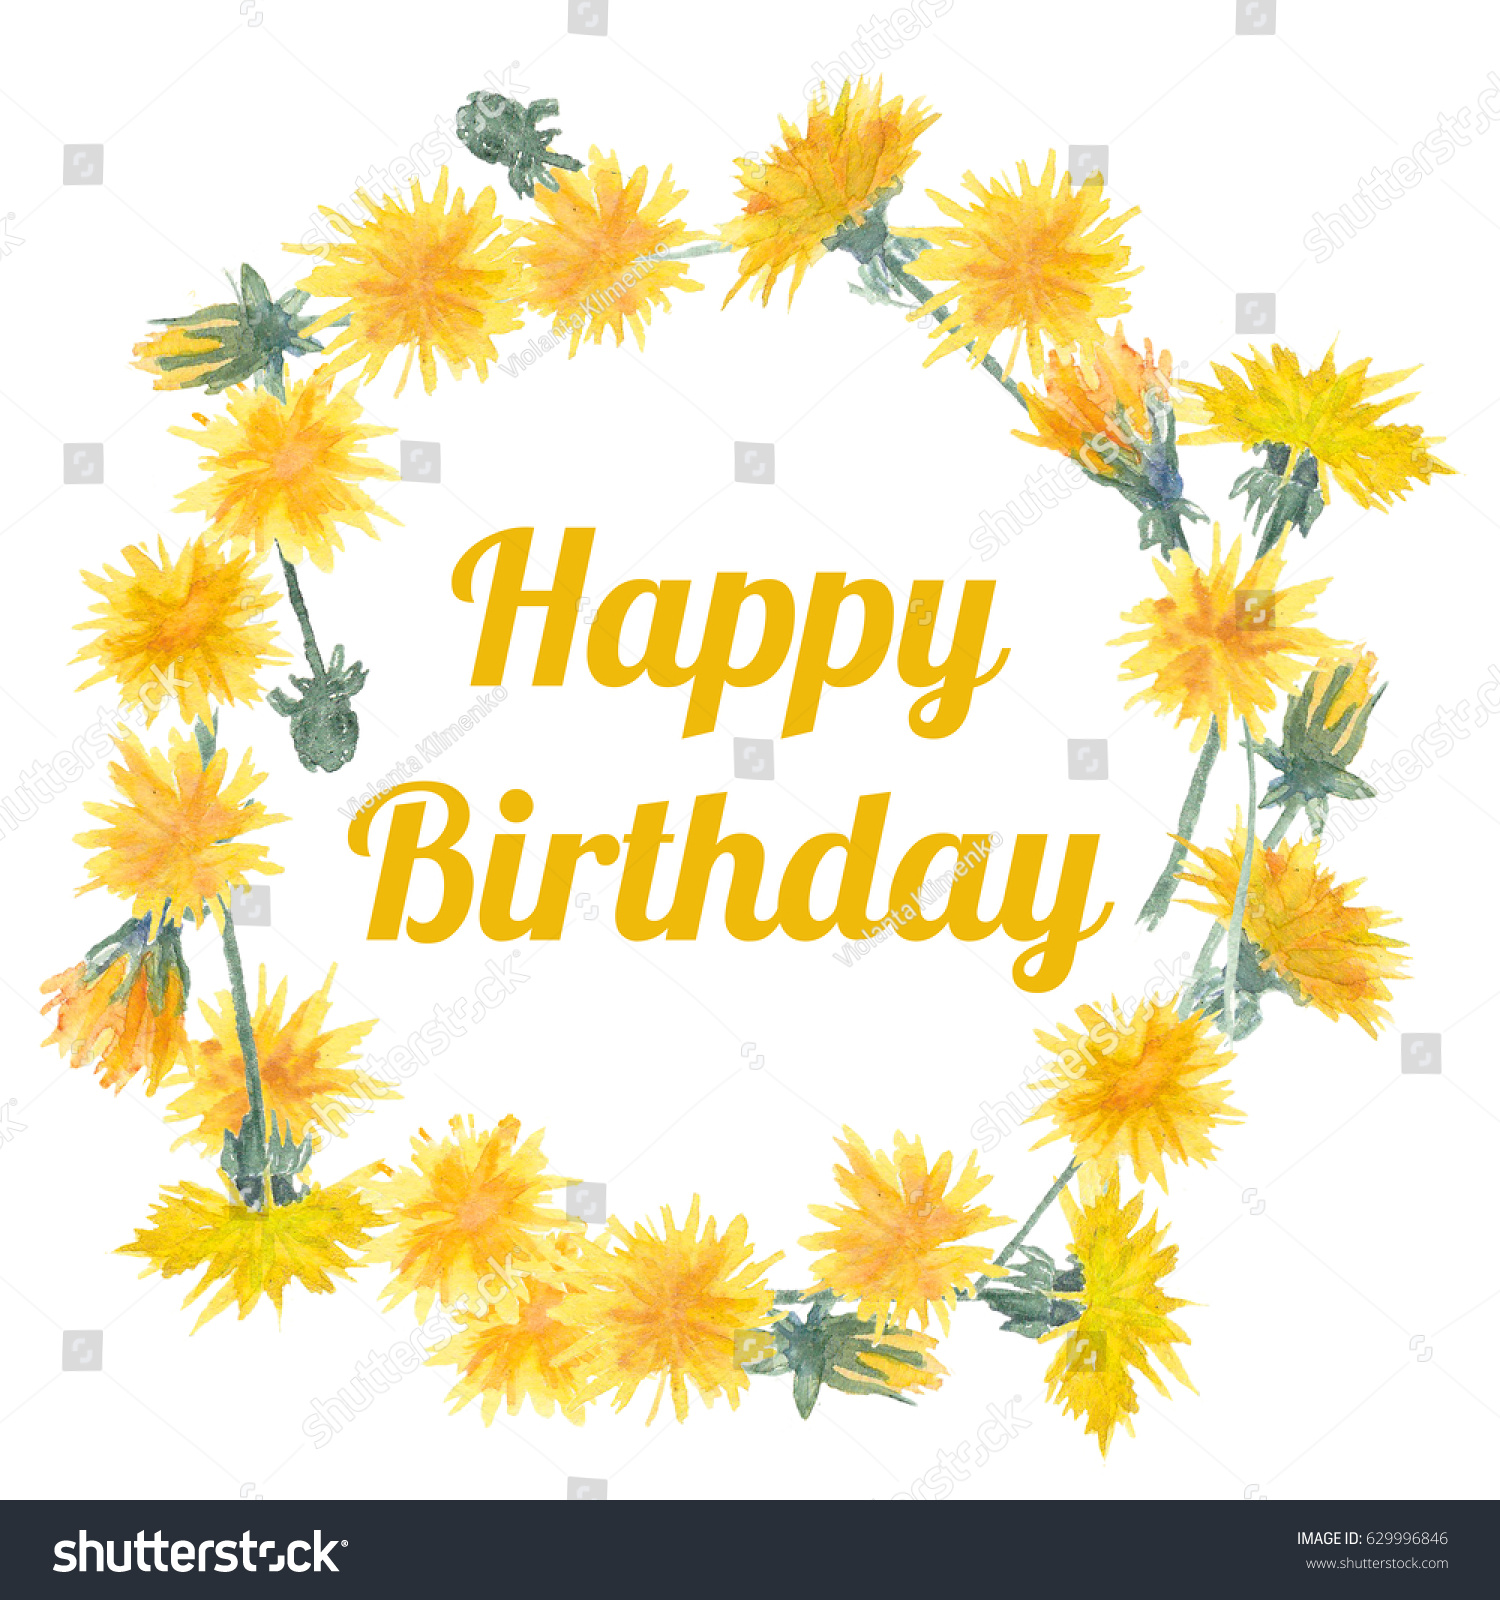 Watercolor Dandelion Wreath Happy Birthday Stock Illustration